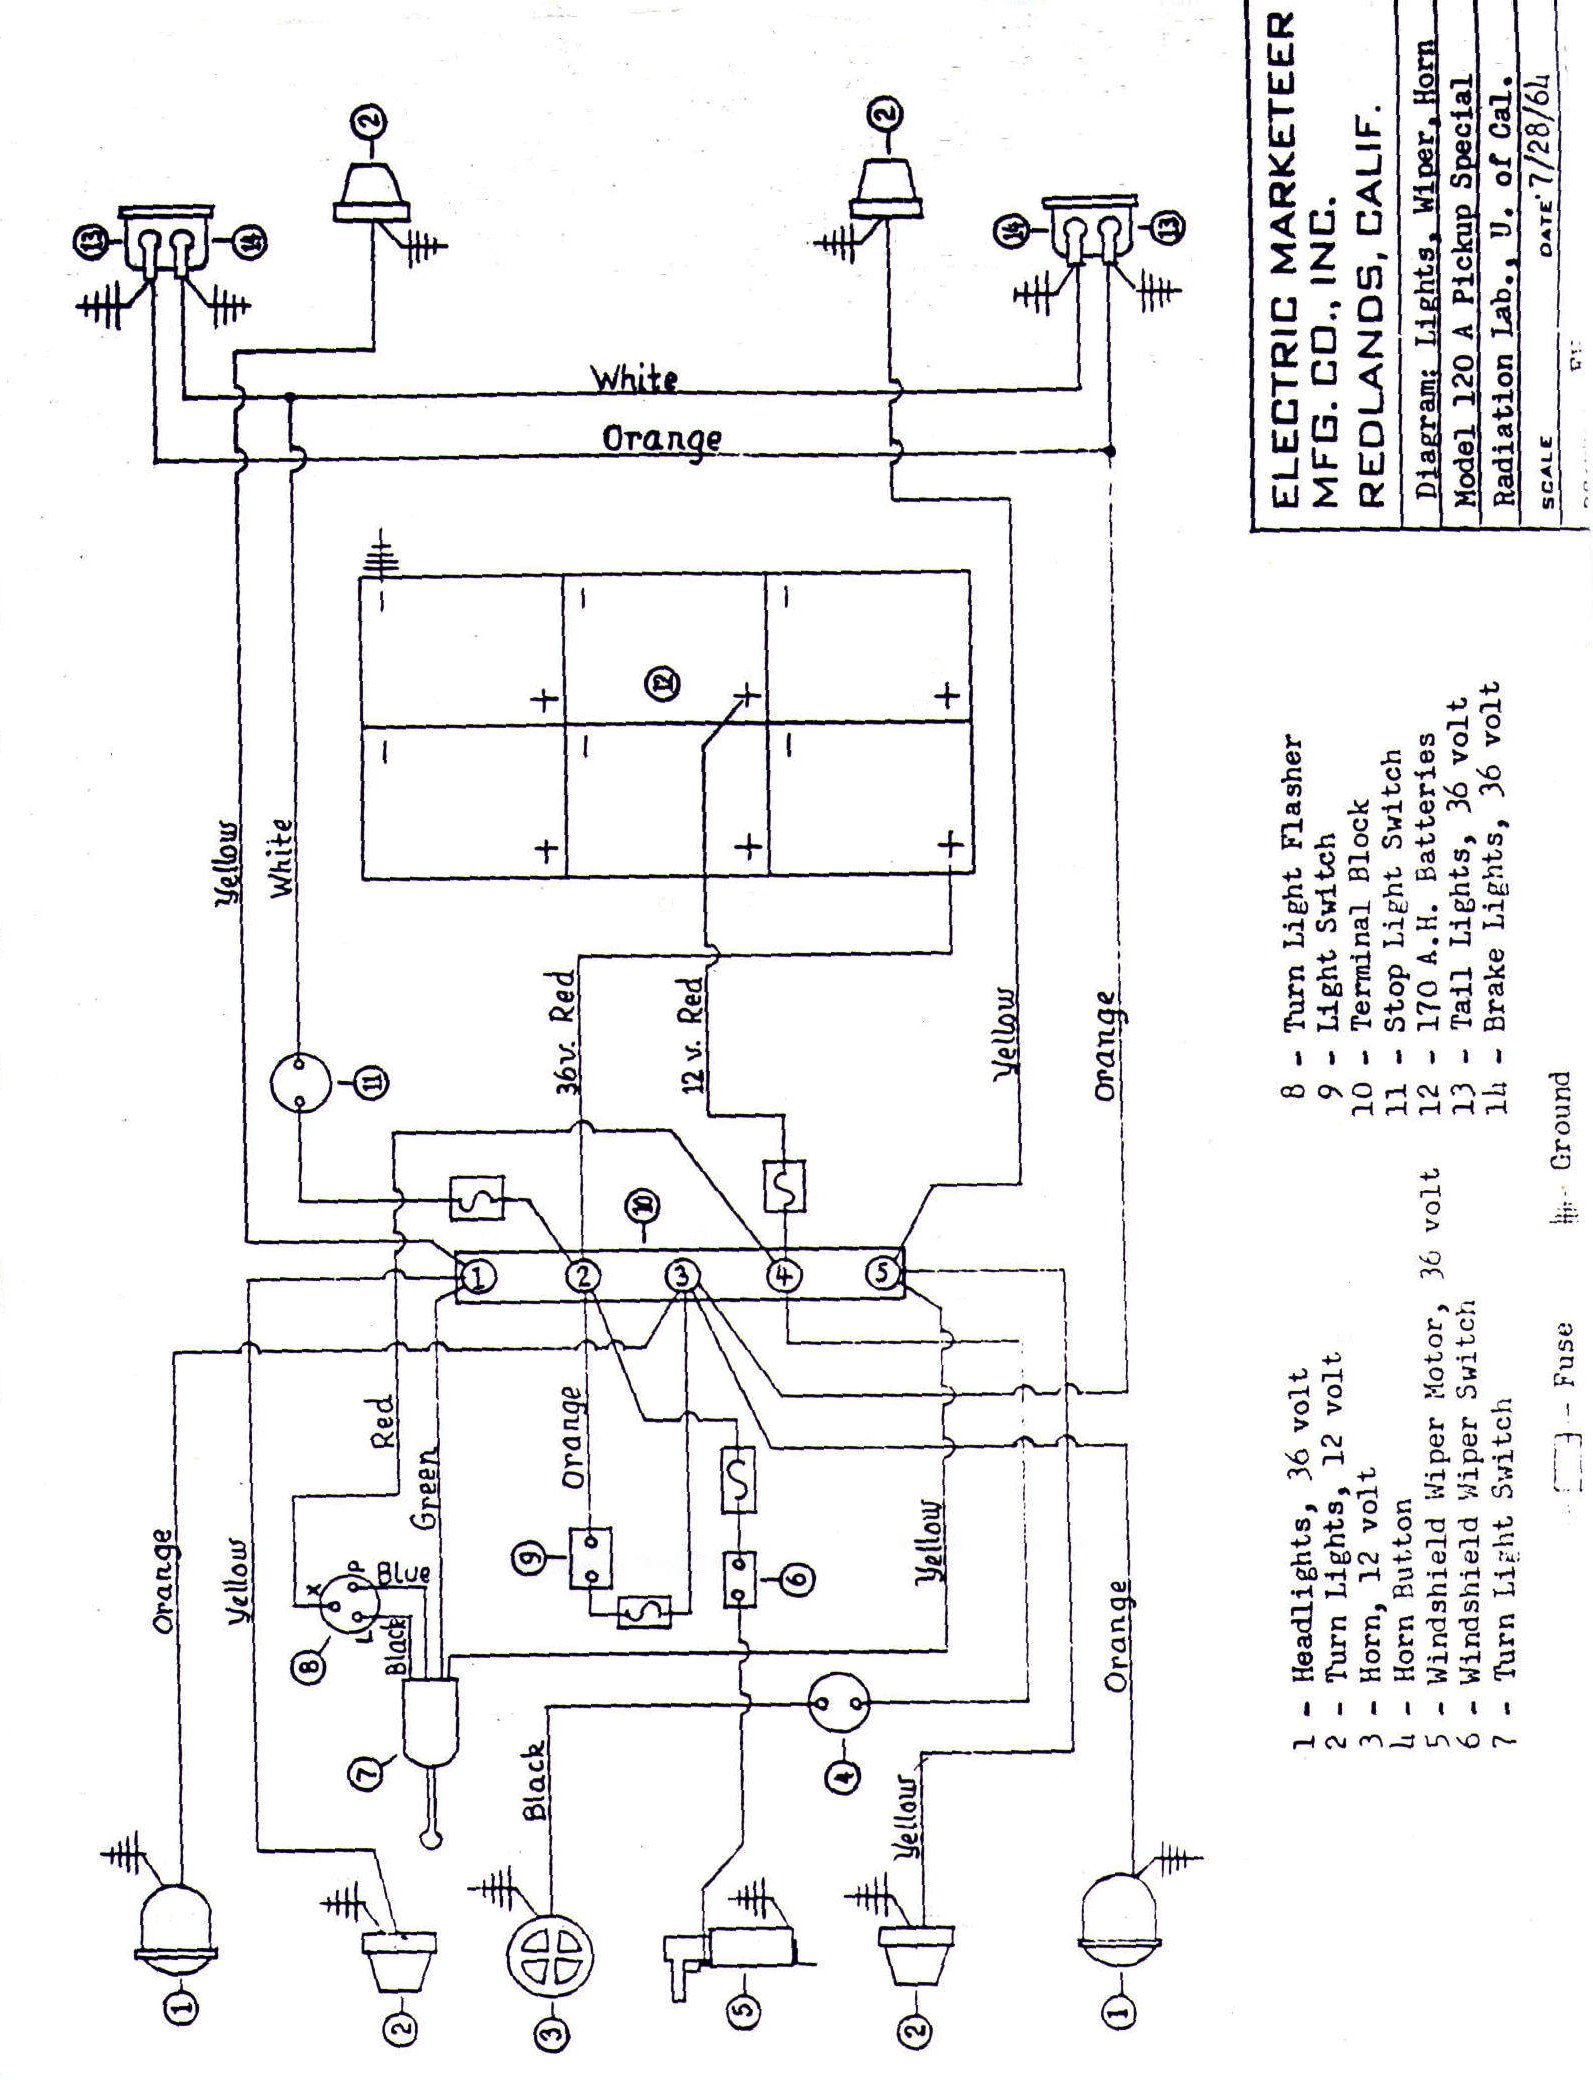 Markeeter_Wiring_Diagram_2 vintagegolfcartparts com westinghouse golf cart wiring diagram at arjmand.co